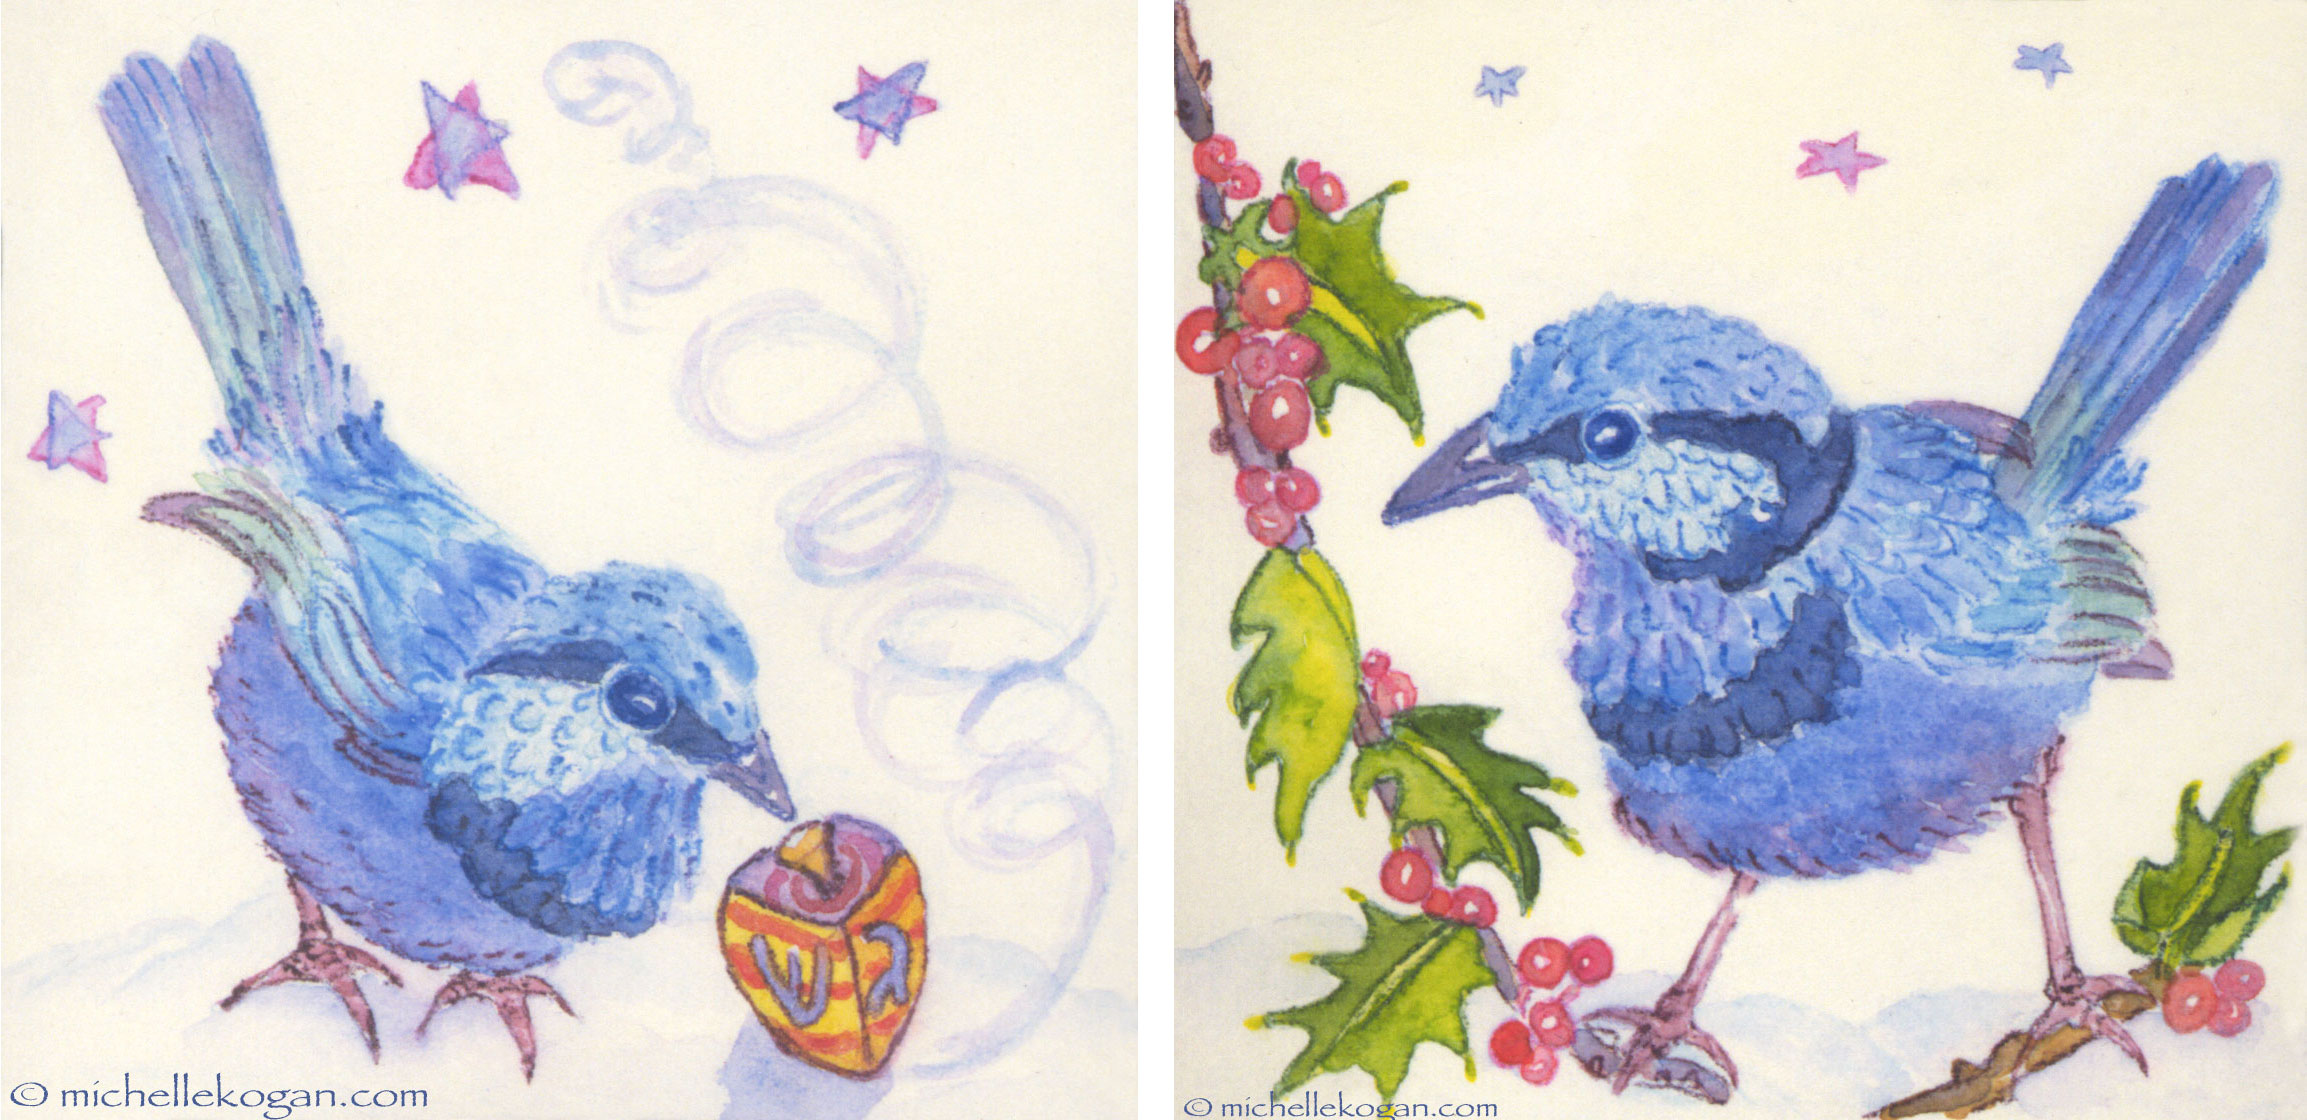 Bluebird-&-dreidel-Holly--12-01-2014-copy